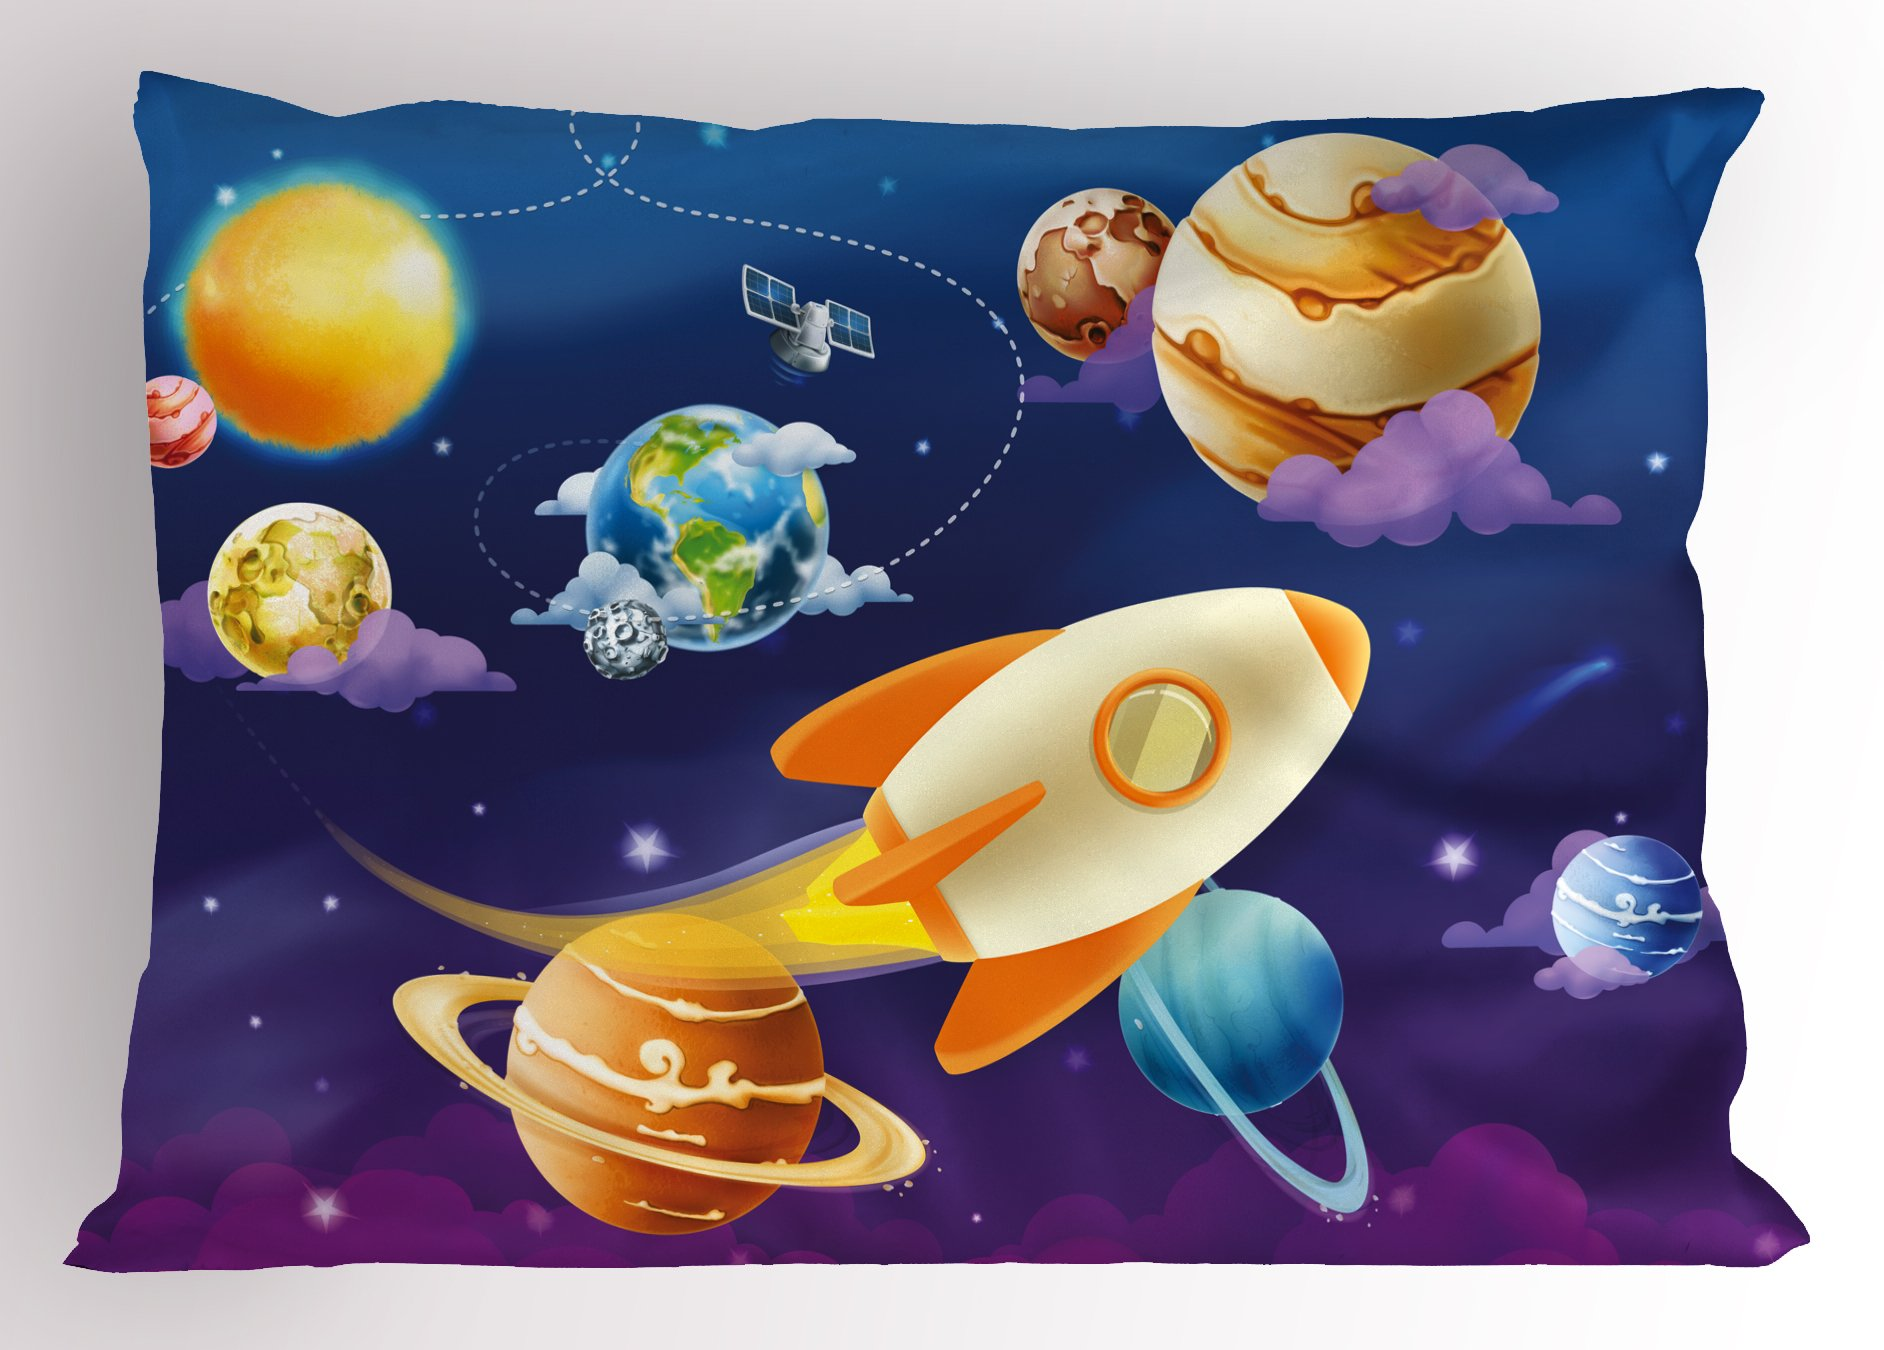 Lunarable Boy's Room Pillow Sham, Solar System of Planets with a Cute Spaceship Milky Way Galaxy Earth Jupiter Sun, Decorative Standard Queen Size Printed Pillowcase, 30 X 20 inches, Multicolor